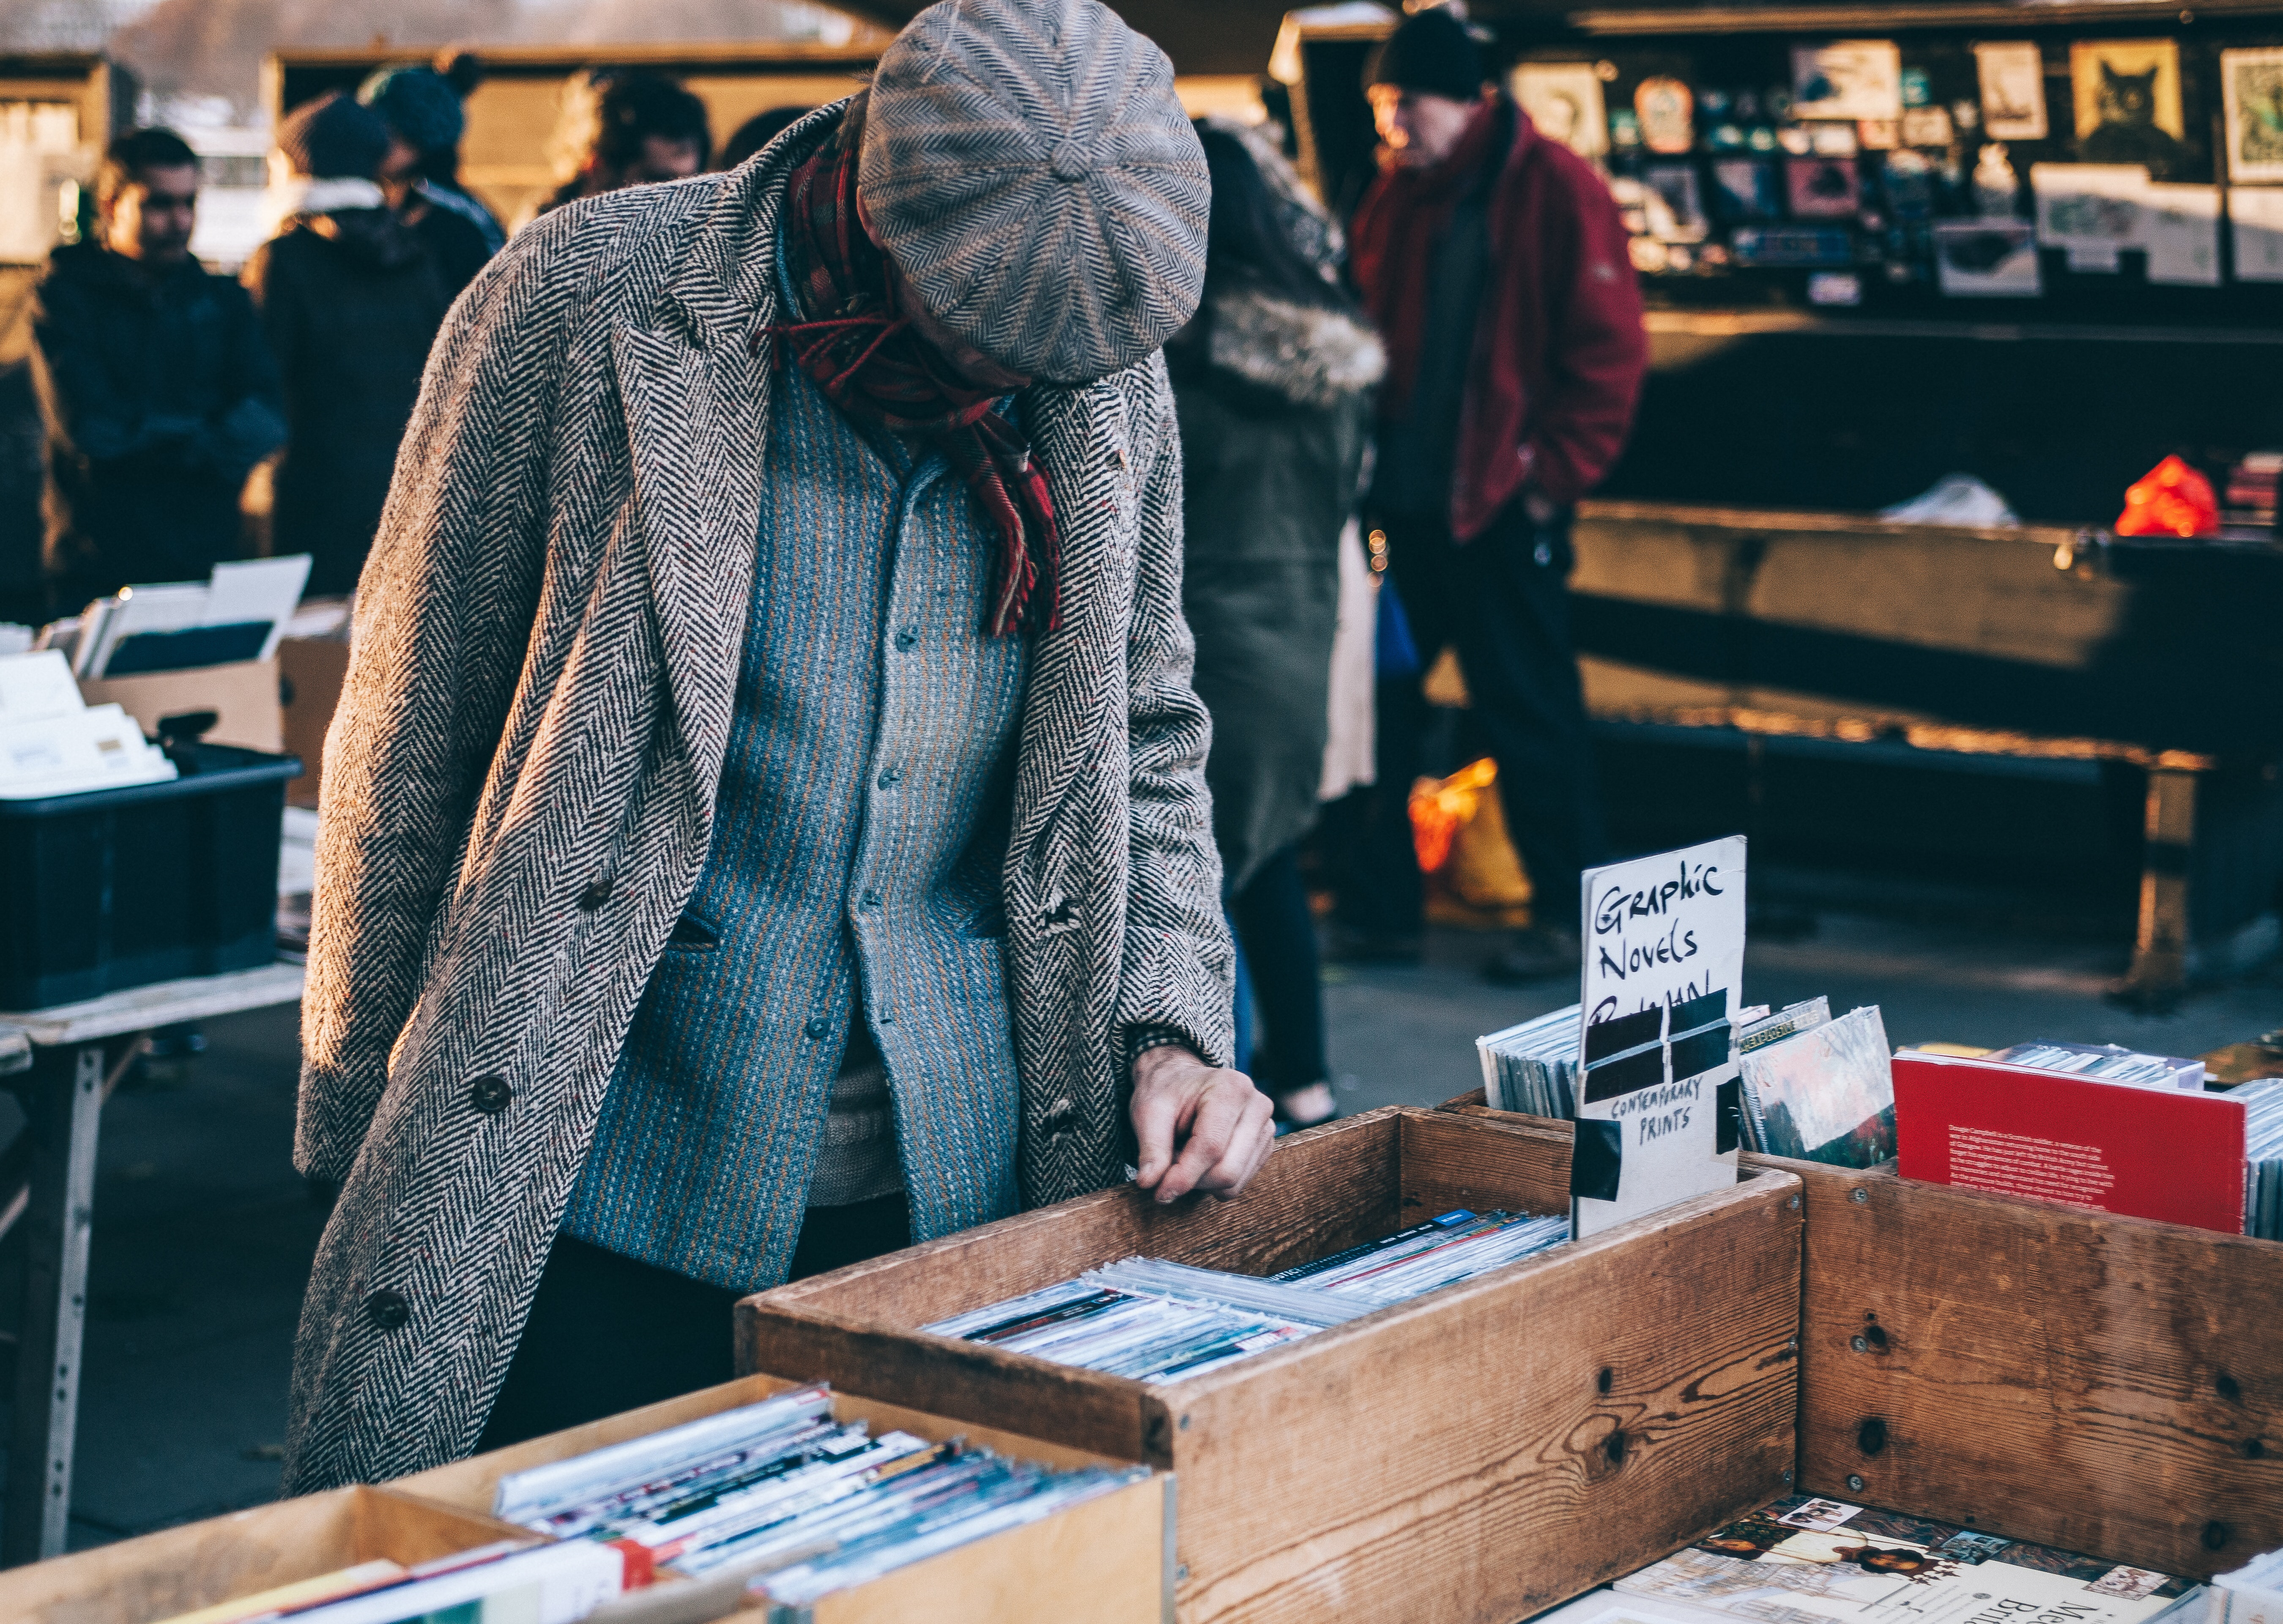 Man in a coat looking through boxes of used novels to save money